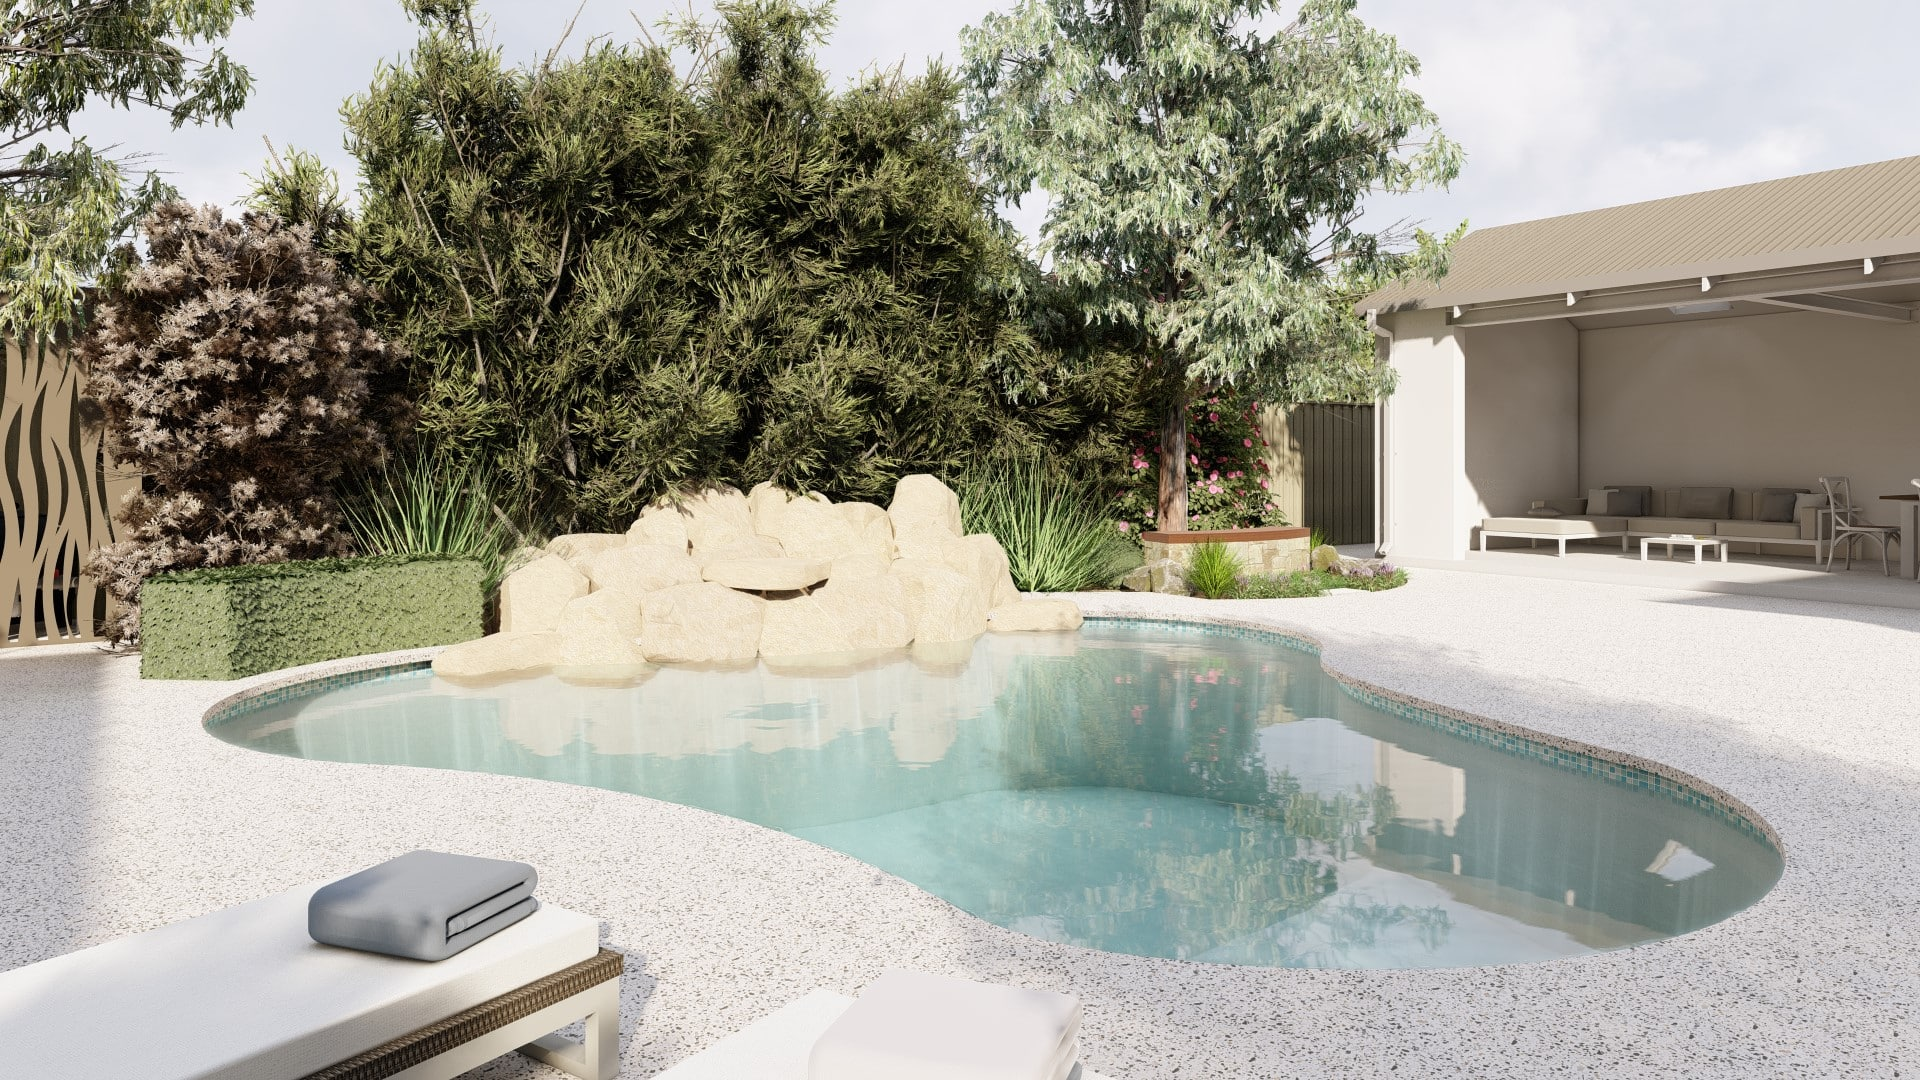 Seamless concrete pool edge Perth Decorative Concrete verge appeal front pathway exposed aggregate driveway applecross